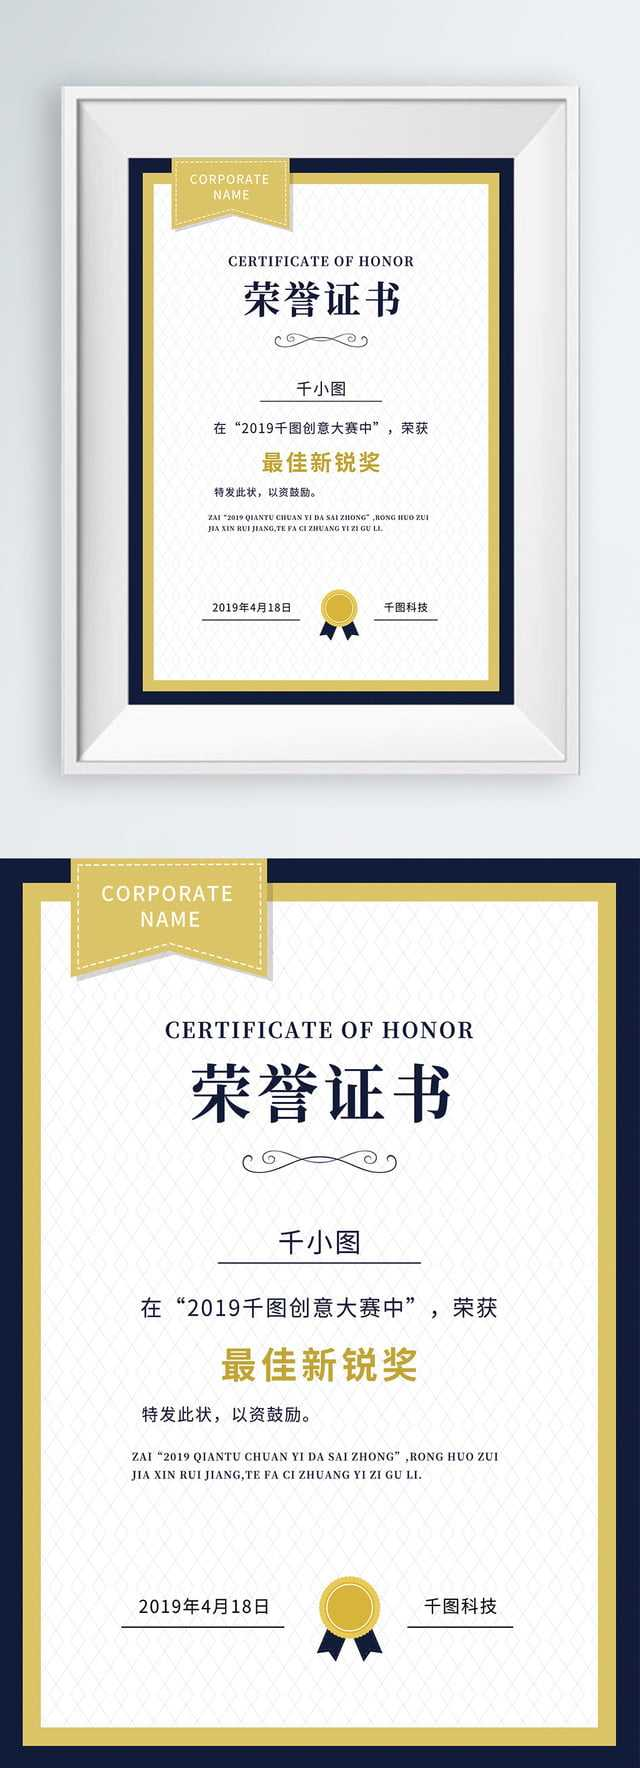 Certificate Authorization Certificate Certificate Of Honor Intended For Certificate Of License Template